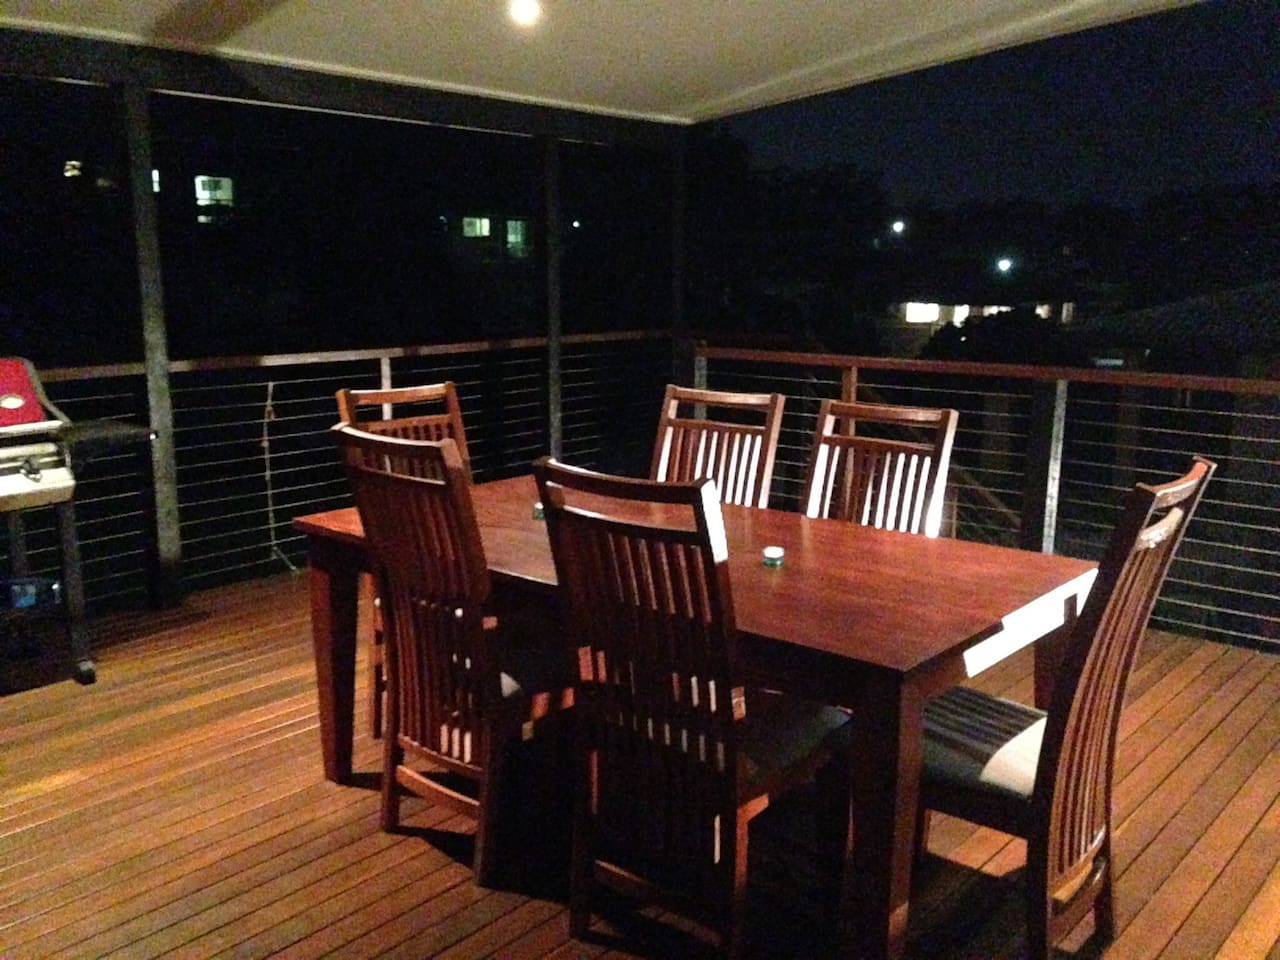 Large rear deck overlooking bushland. BBQ, smoker and drinks fridge on deck available to use.